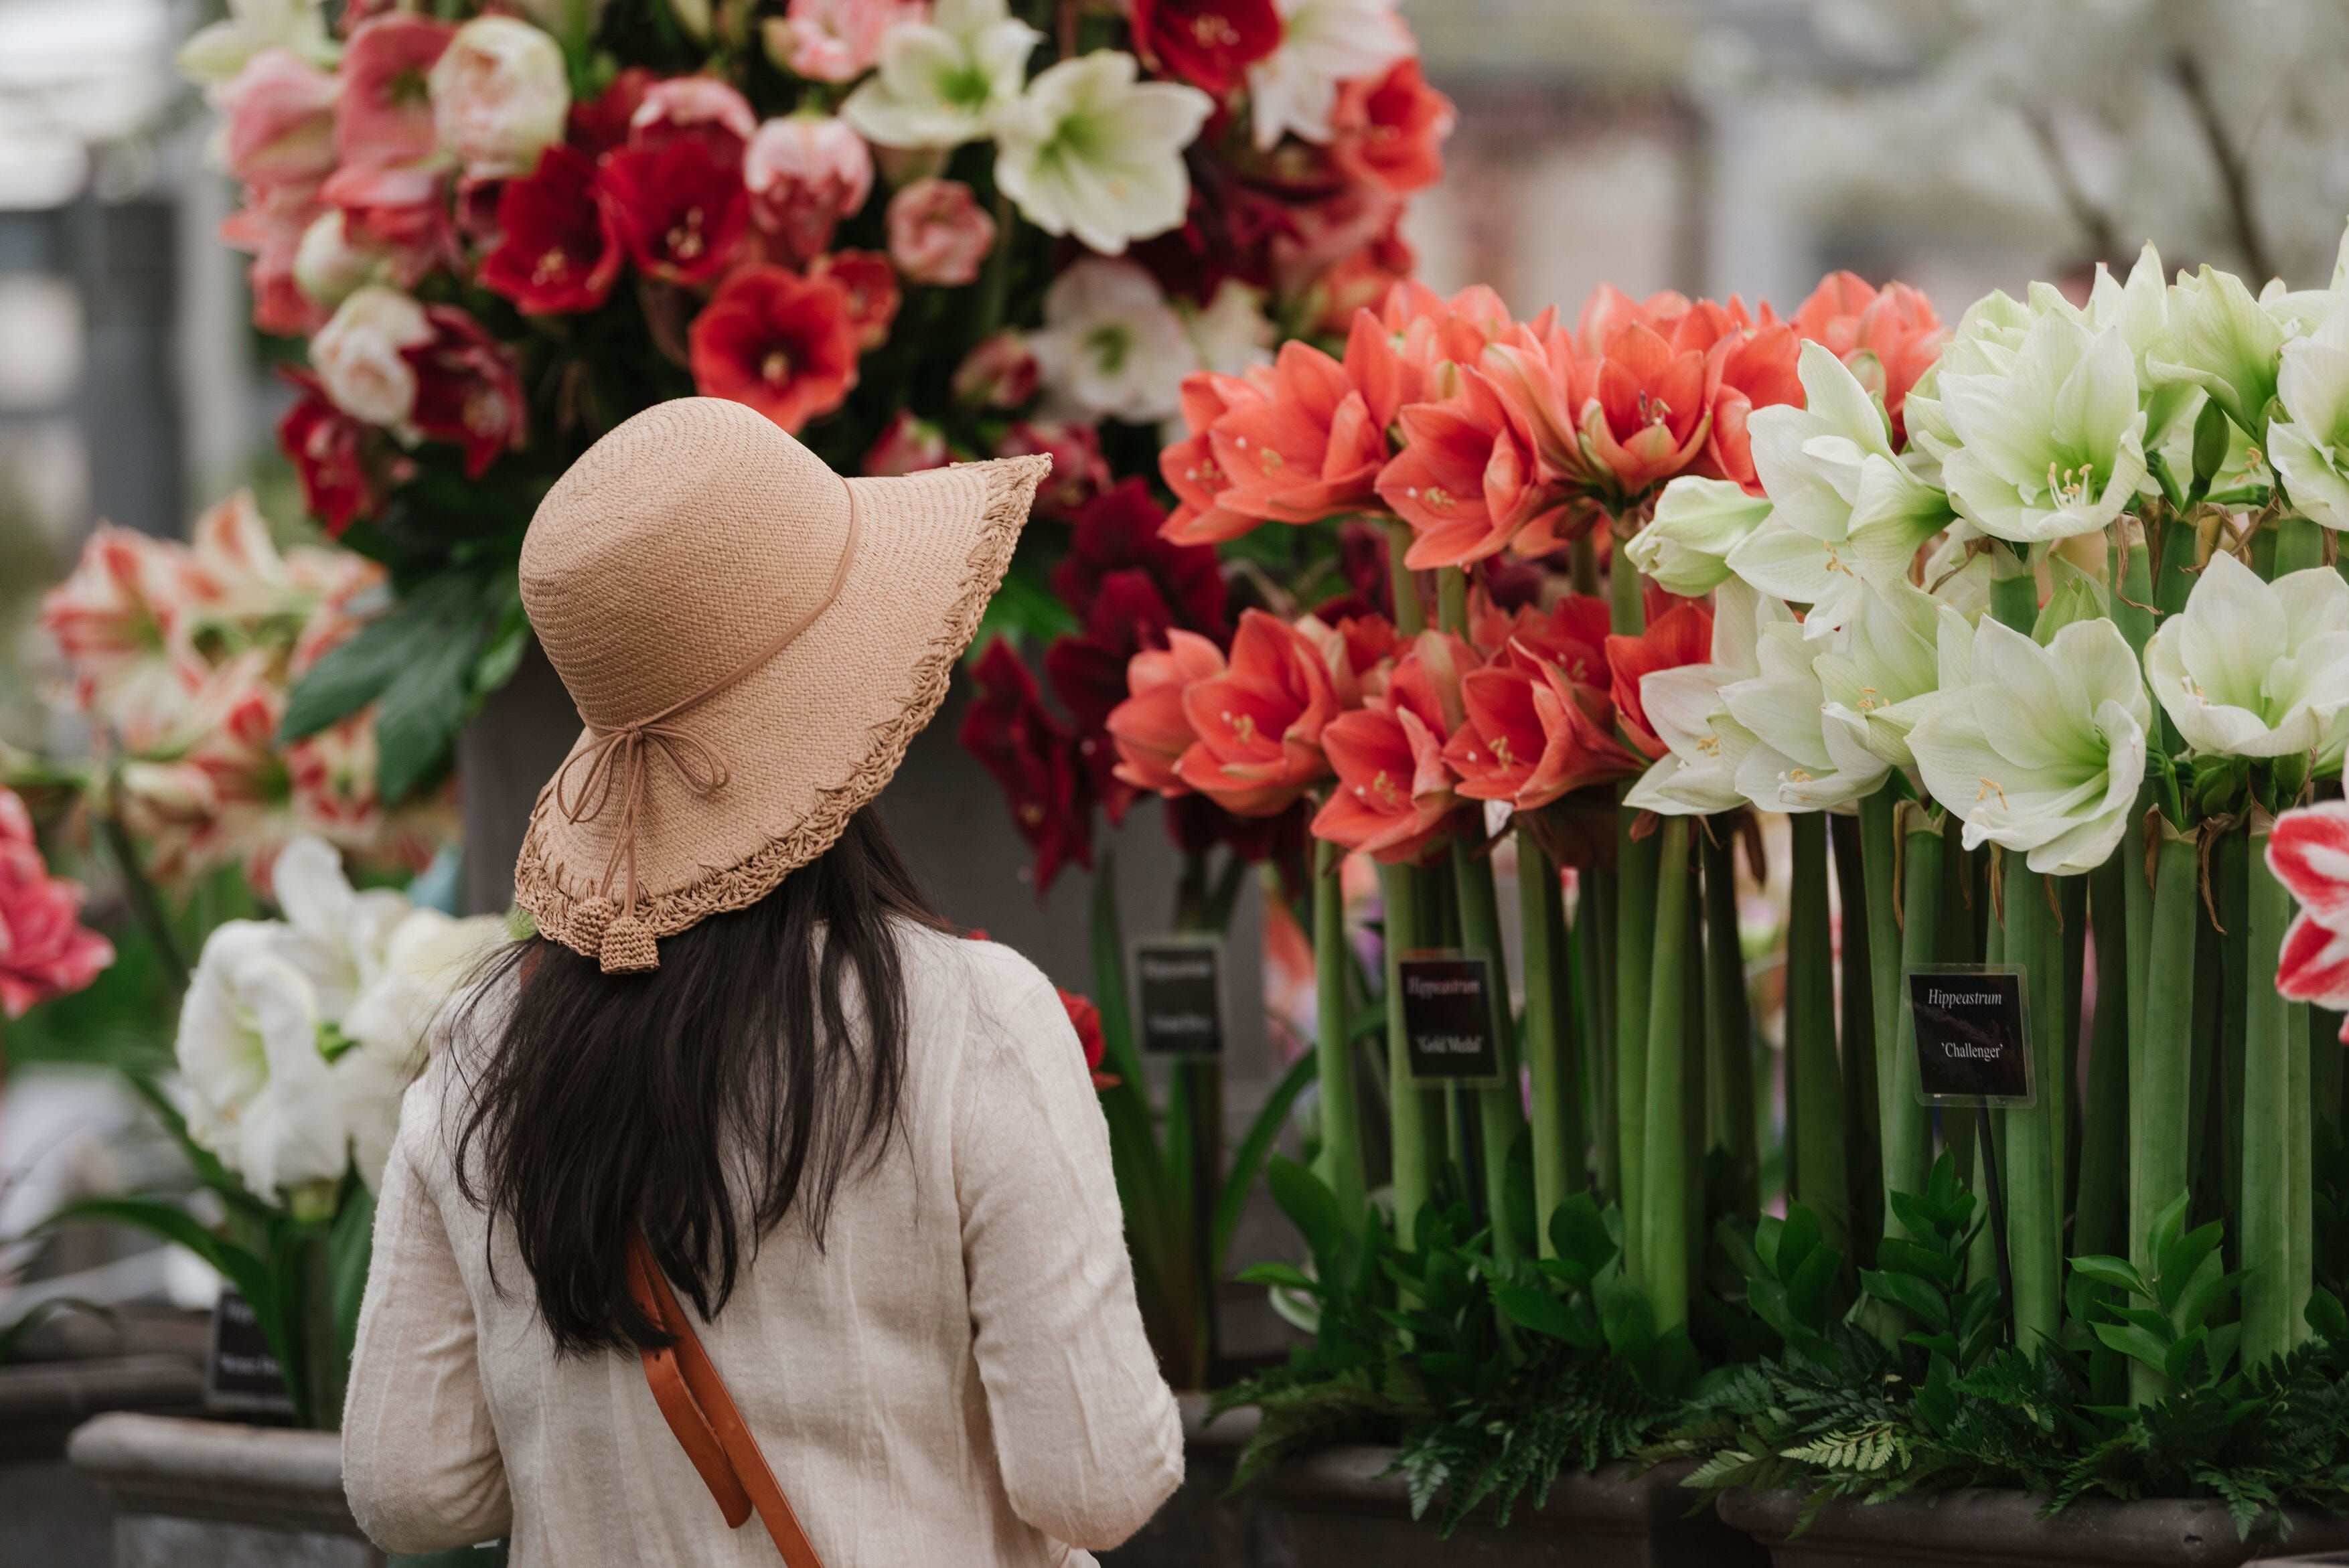 Woman wearing a straw hat, admiring flowers at the Chelsea Flower Show